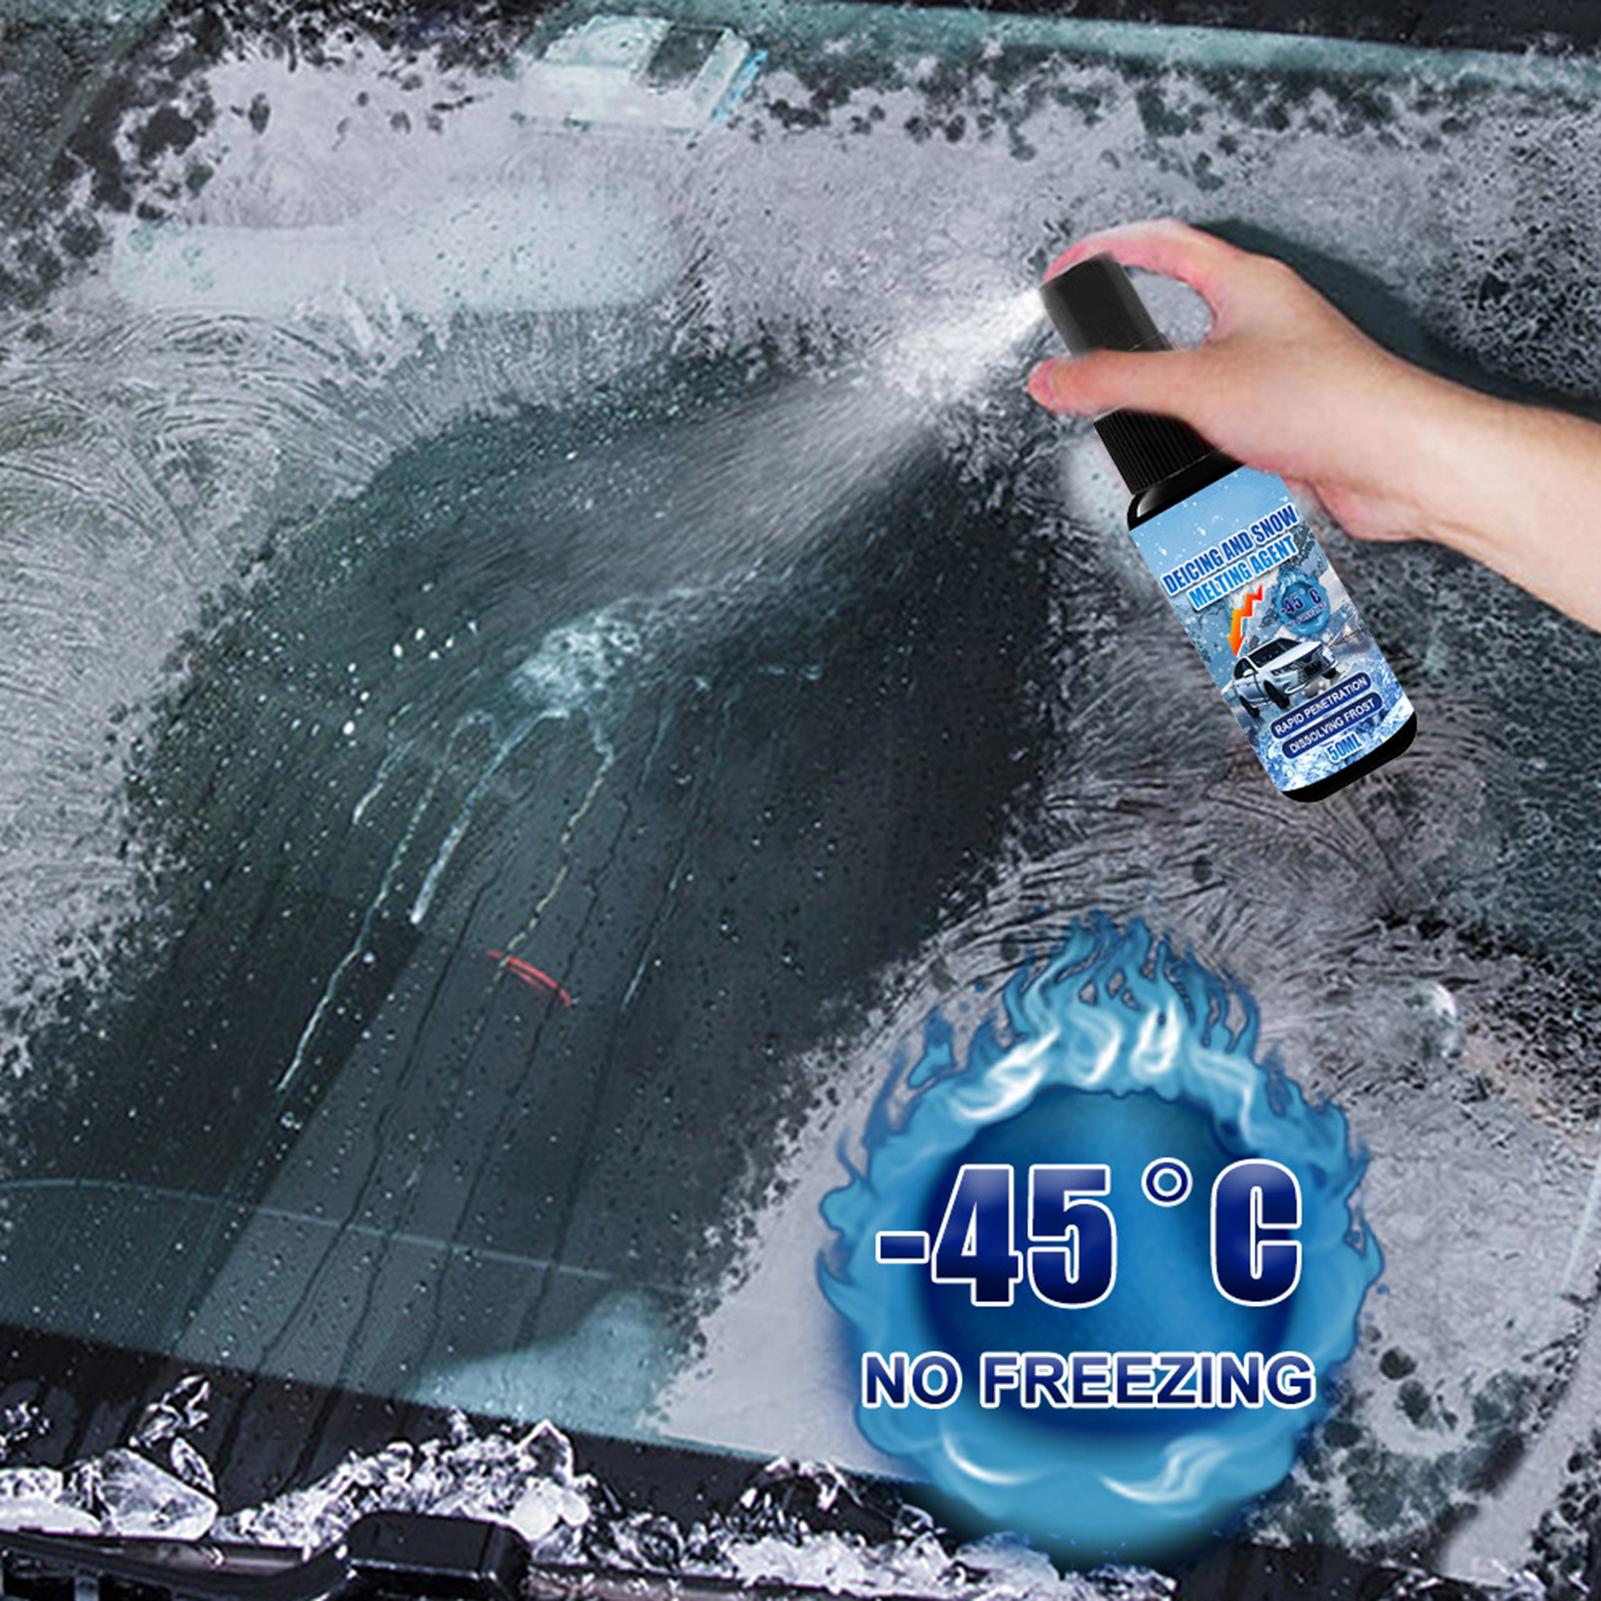 snow-remover-deicing-tool-removal-car-glass-window-windshield-ice-cleaner-spray